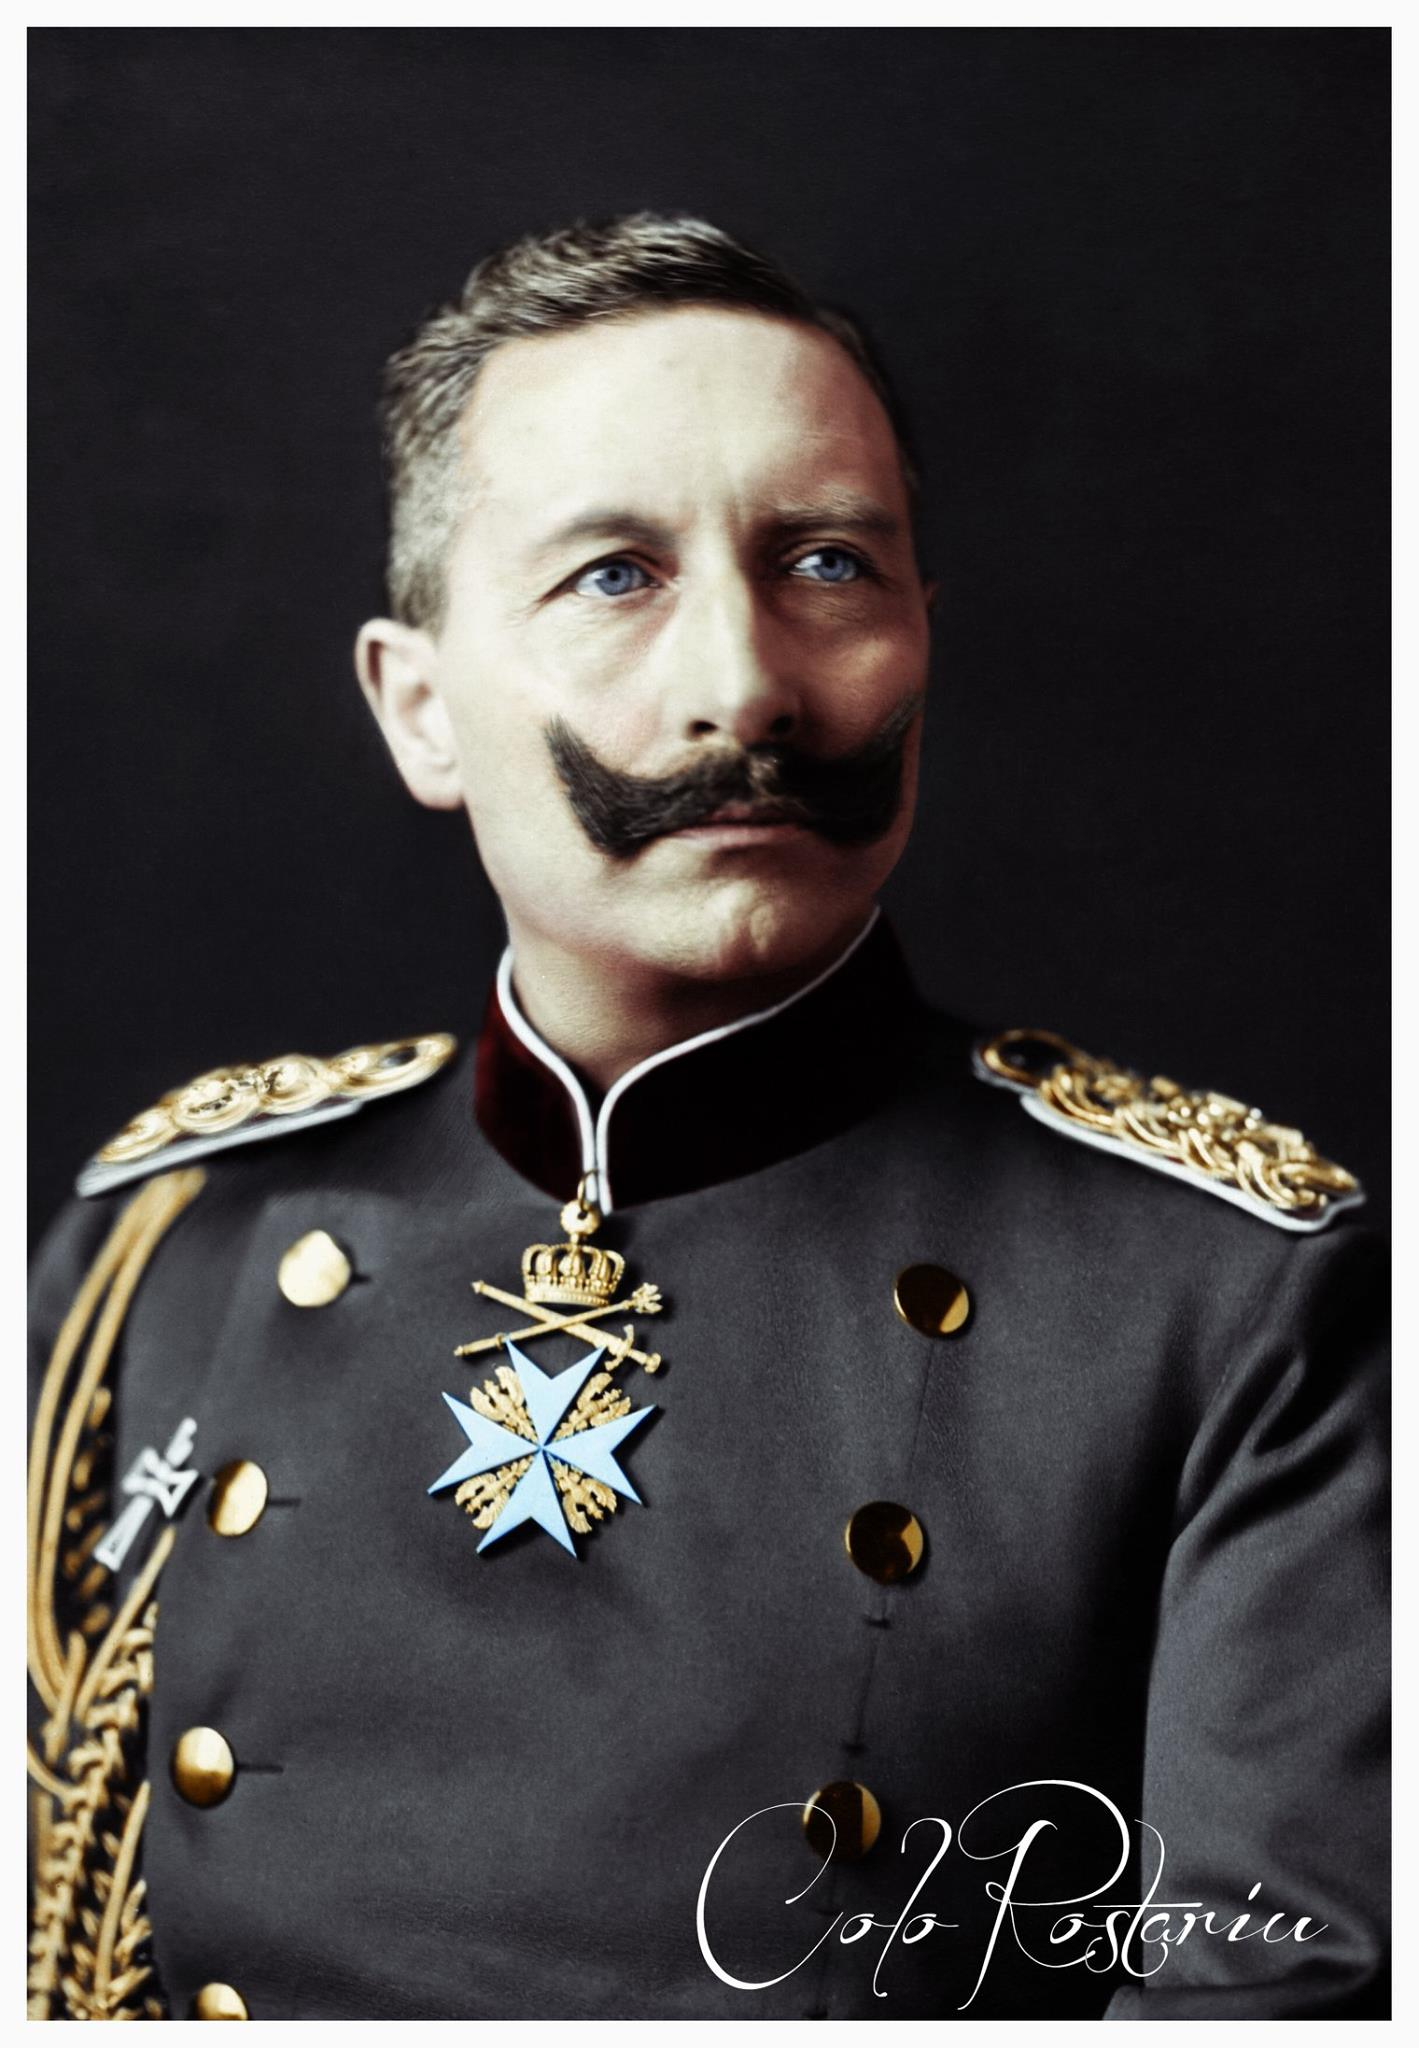 wilhelm-ii-the-last-german-emperor-king-of-prussia-germany-otto-von-bismarck-deutsches-reich-kaiser.jpg